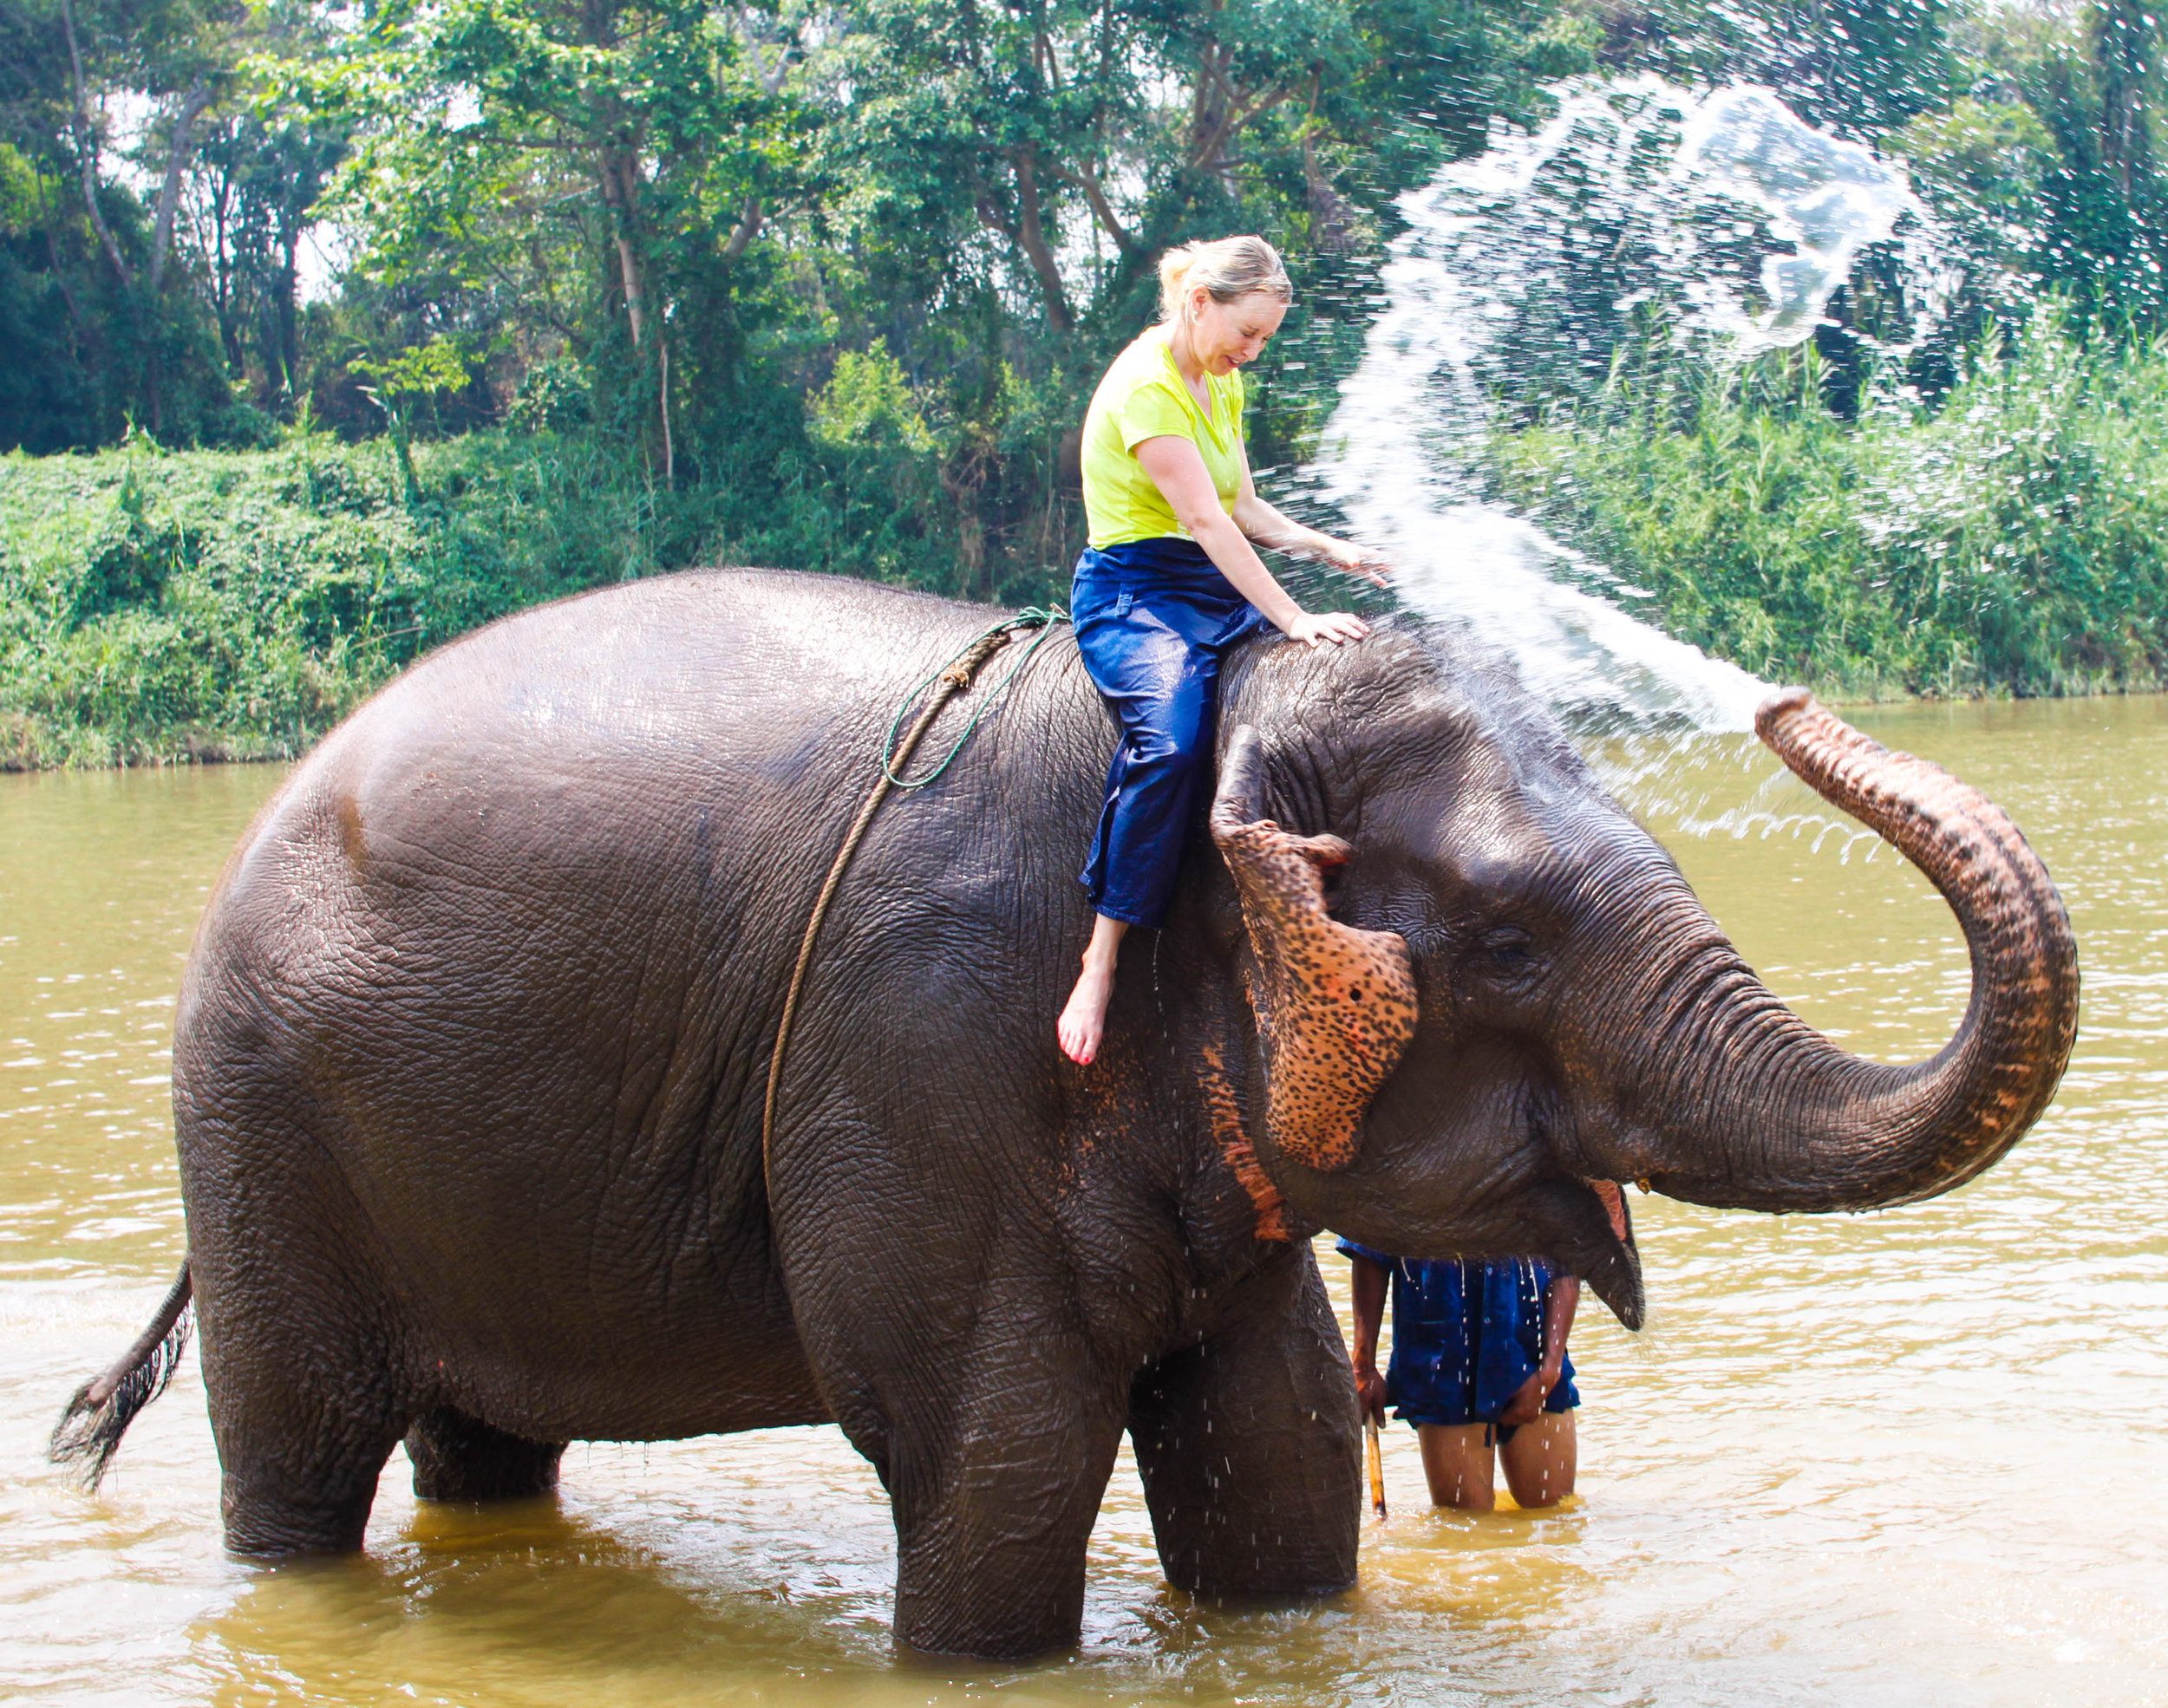 Another elephant picture because I had to show you what great aim this gentle giant had . . .